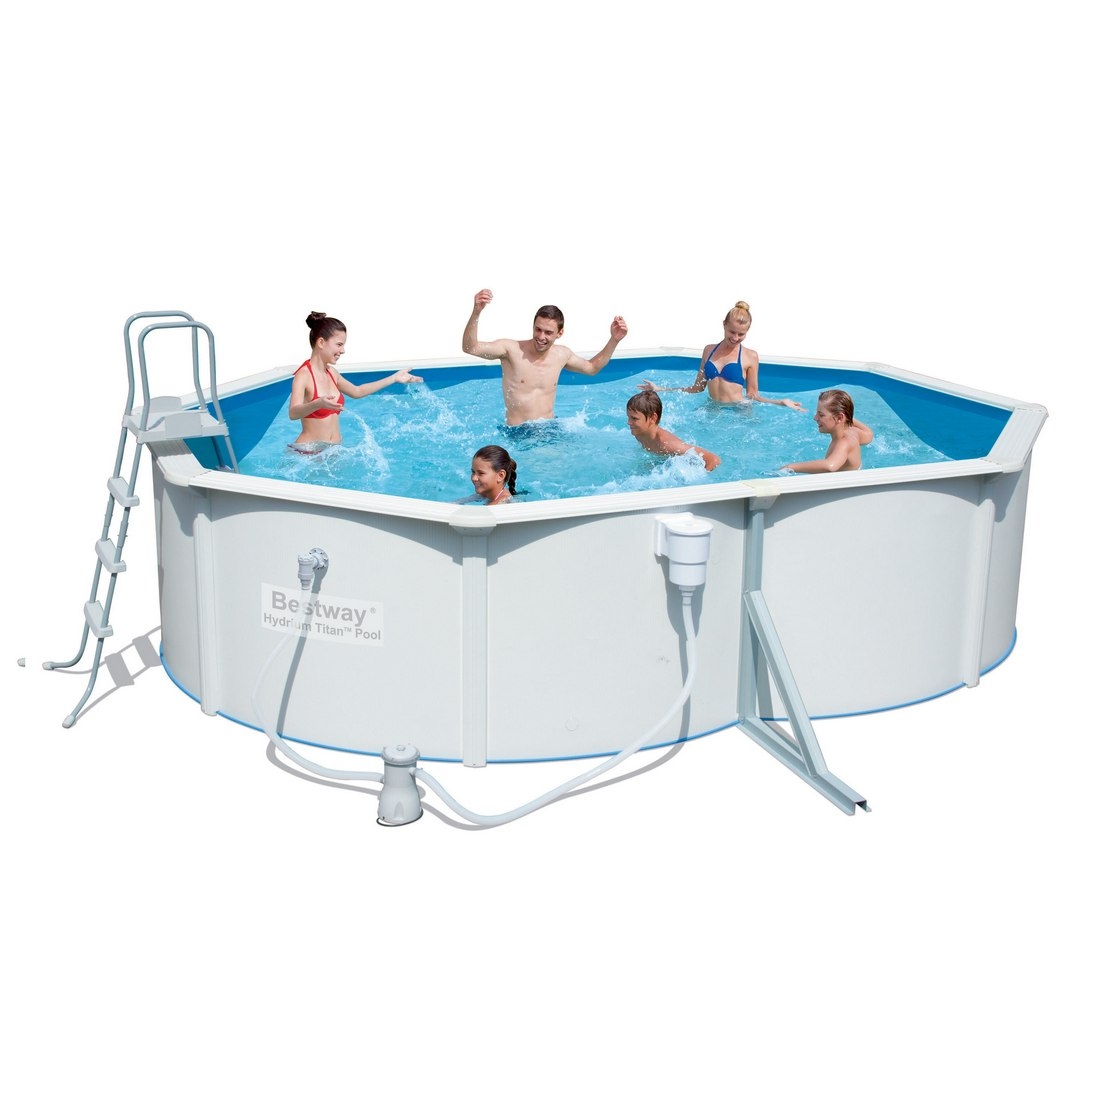 Стальной овальный бассейн Hydrium Oval Pool Set 500х360х120см, 16296л, фил-насос 3028л/ч, лестница, Bestway 56294 BW